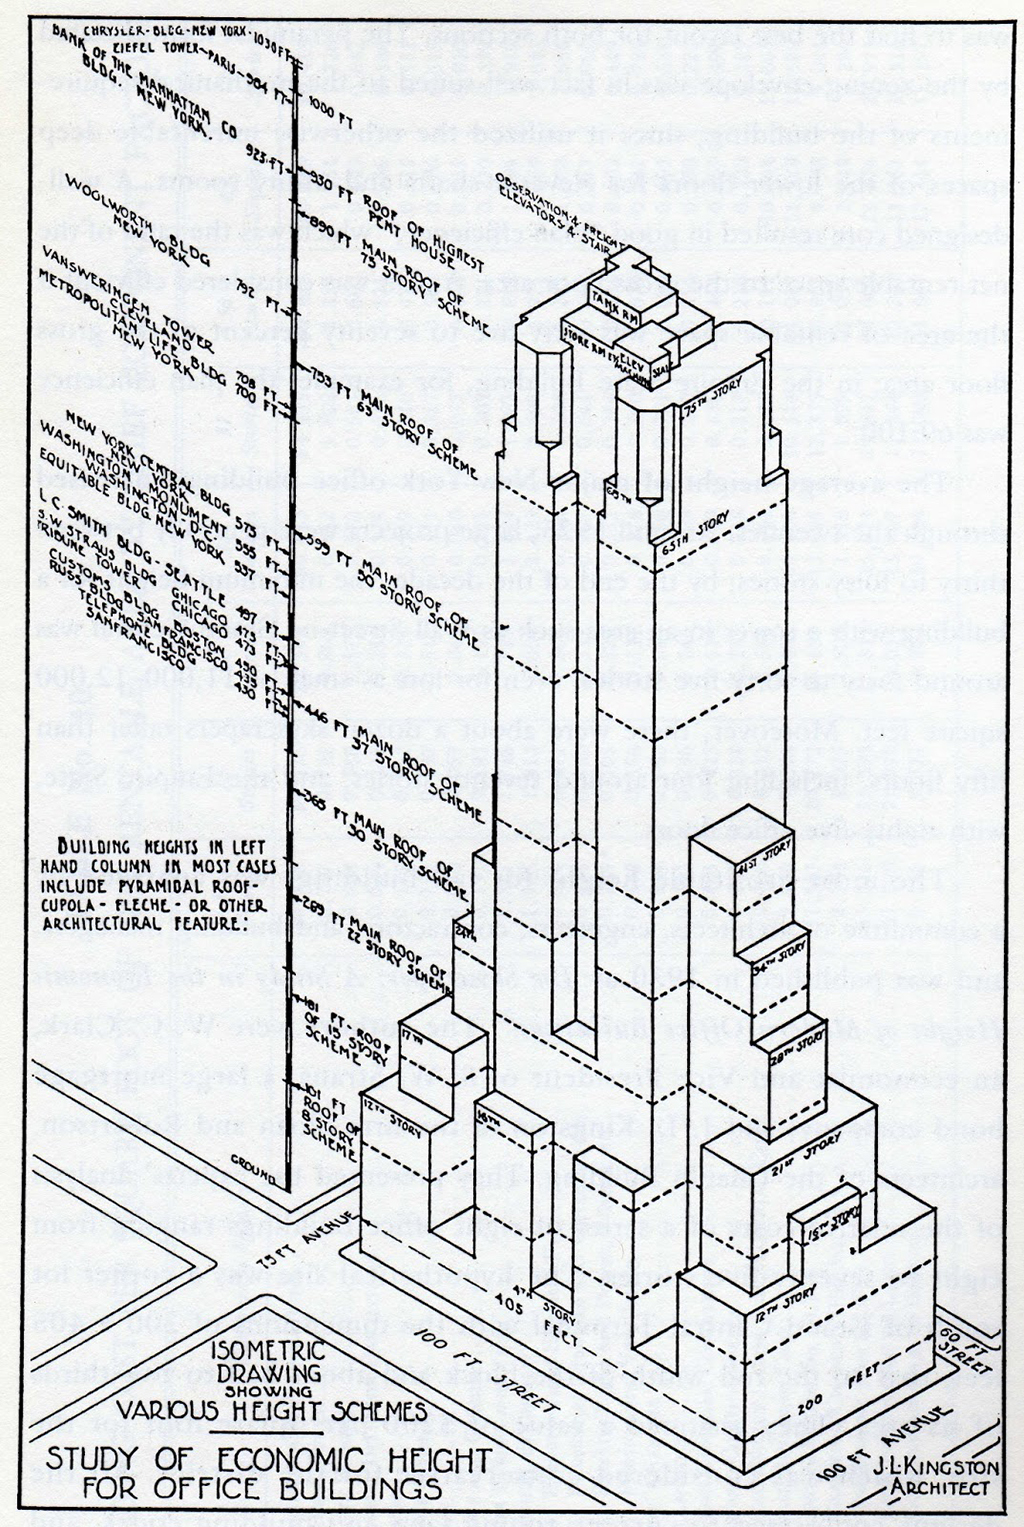 Drawn building dimensional Tragic Poetry  » of